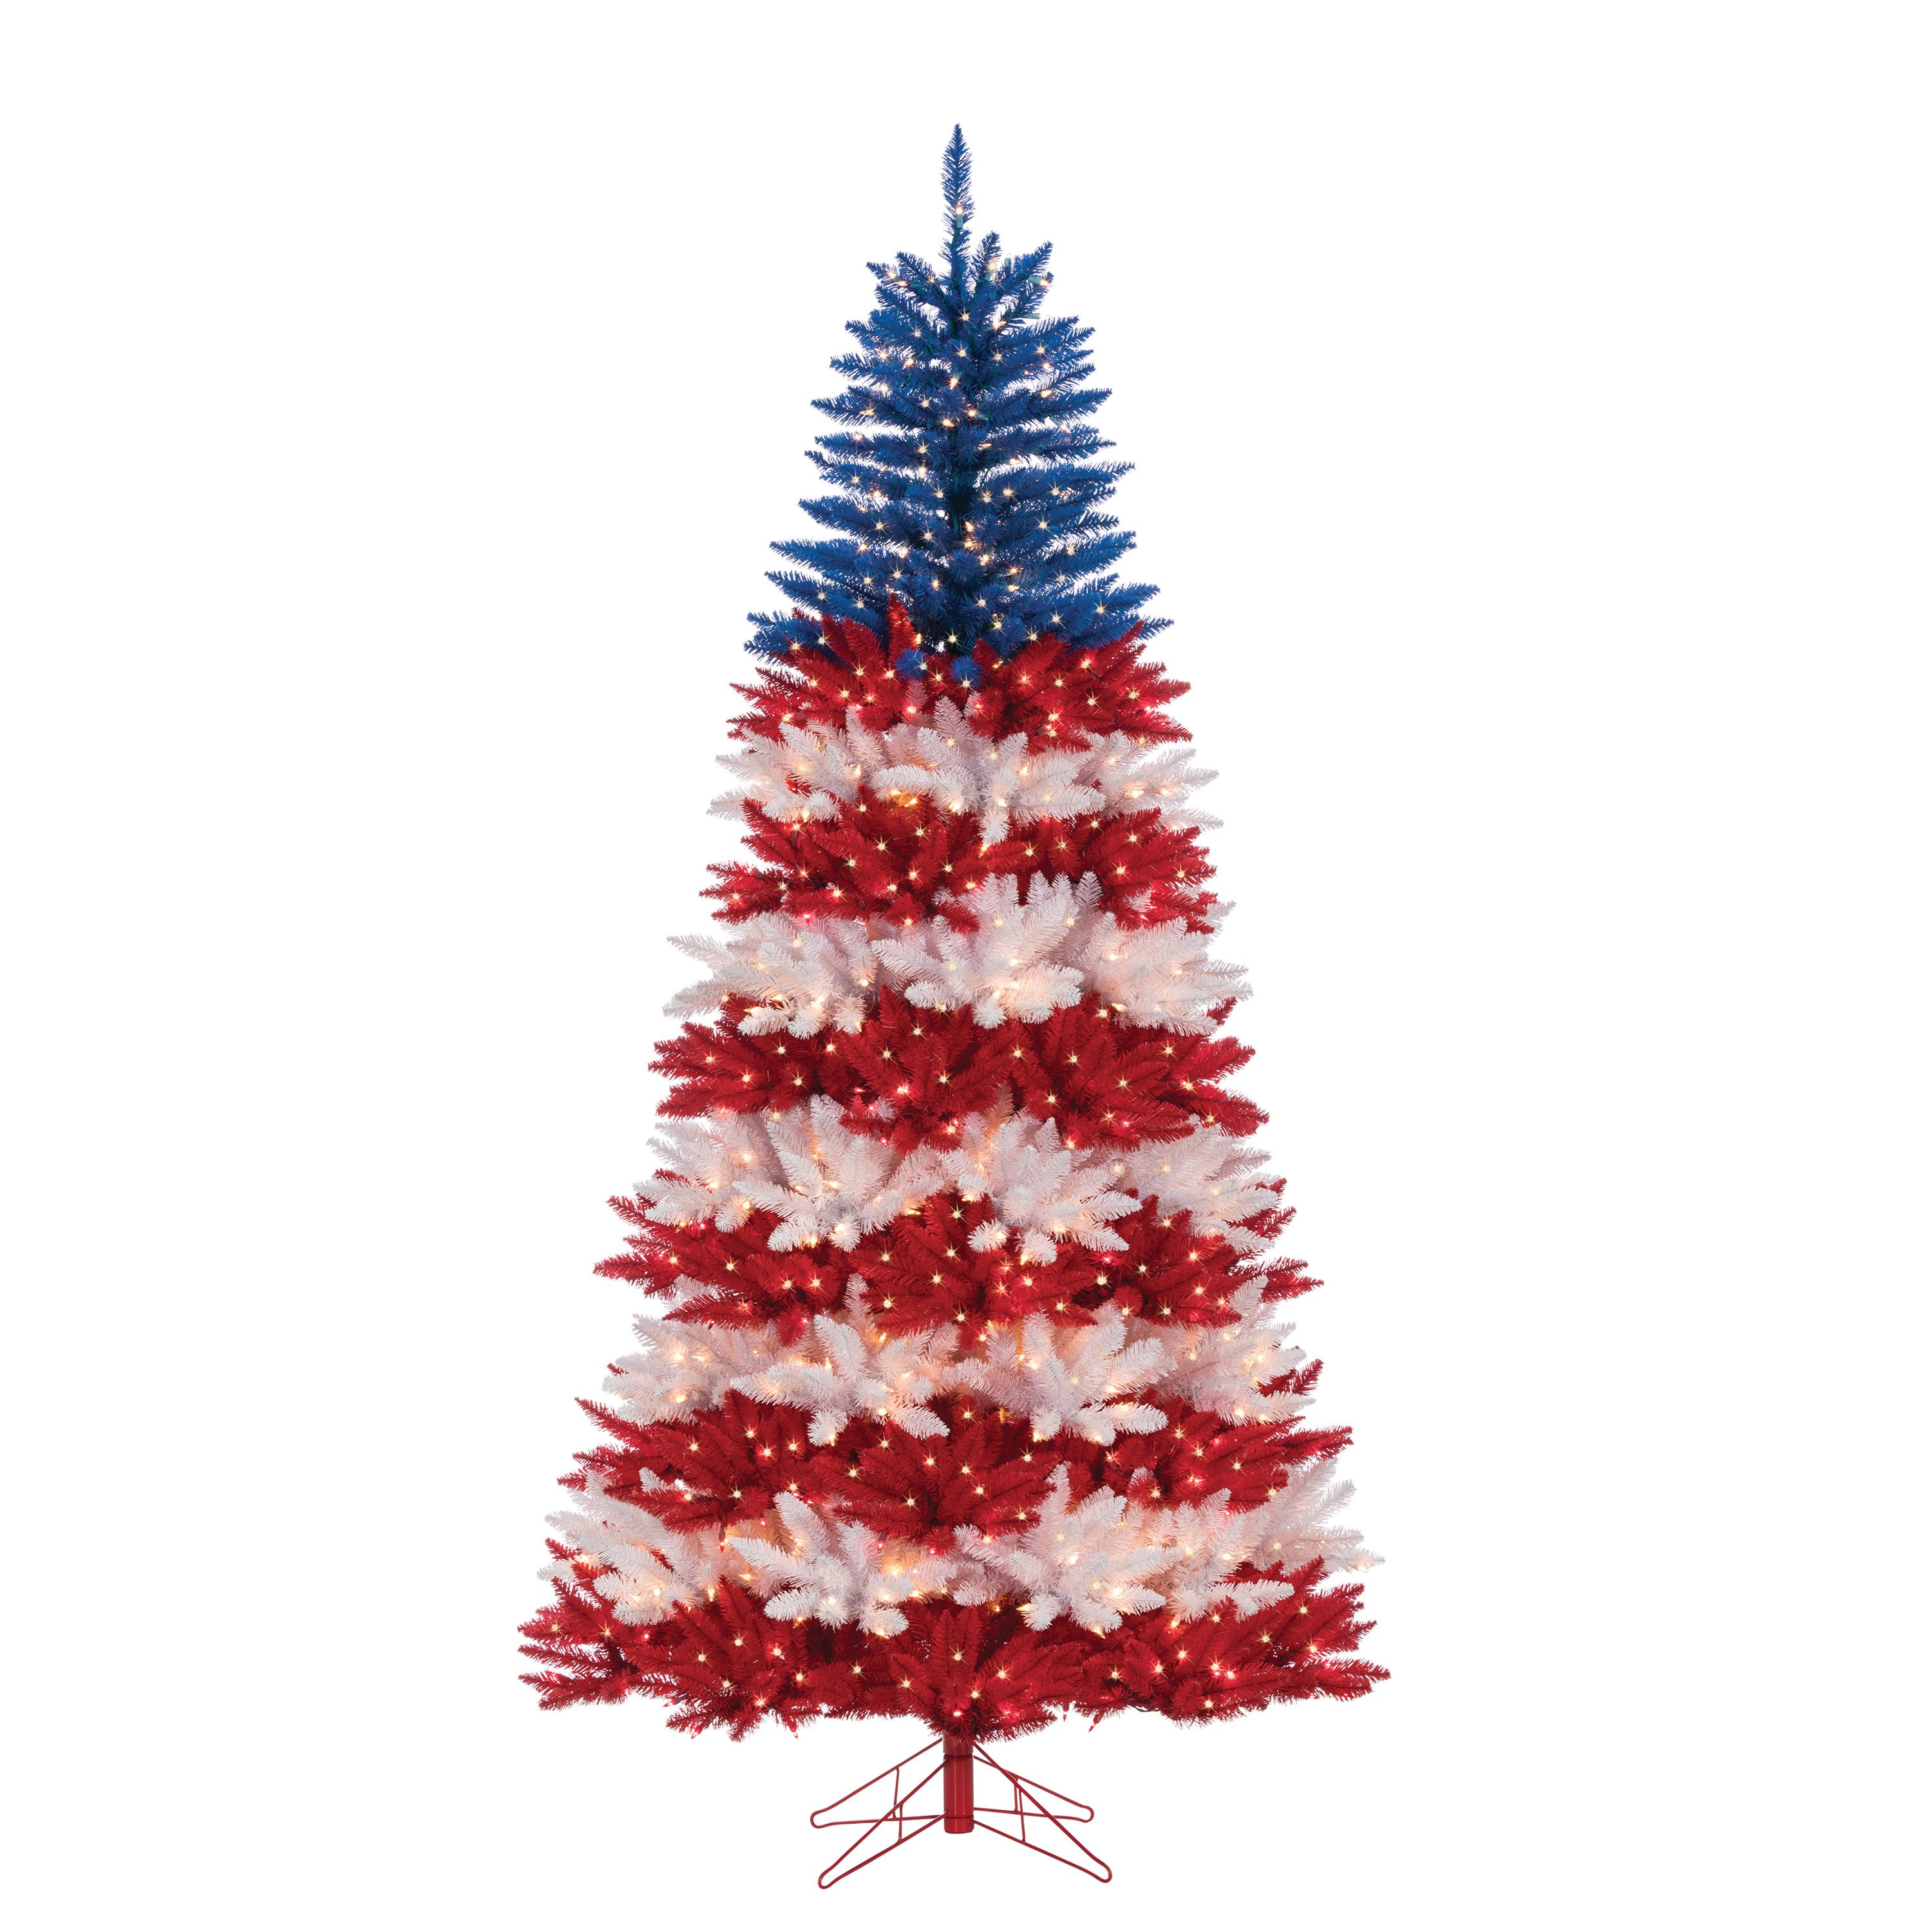 Gerson 7.5Ft. Patriotic America Tree in Red, White and Blue with 1040 Clear Lights and 10 Twinke Lights on Top Section